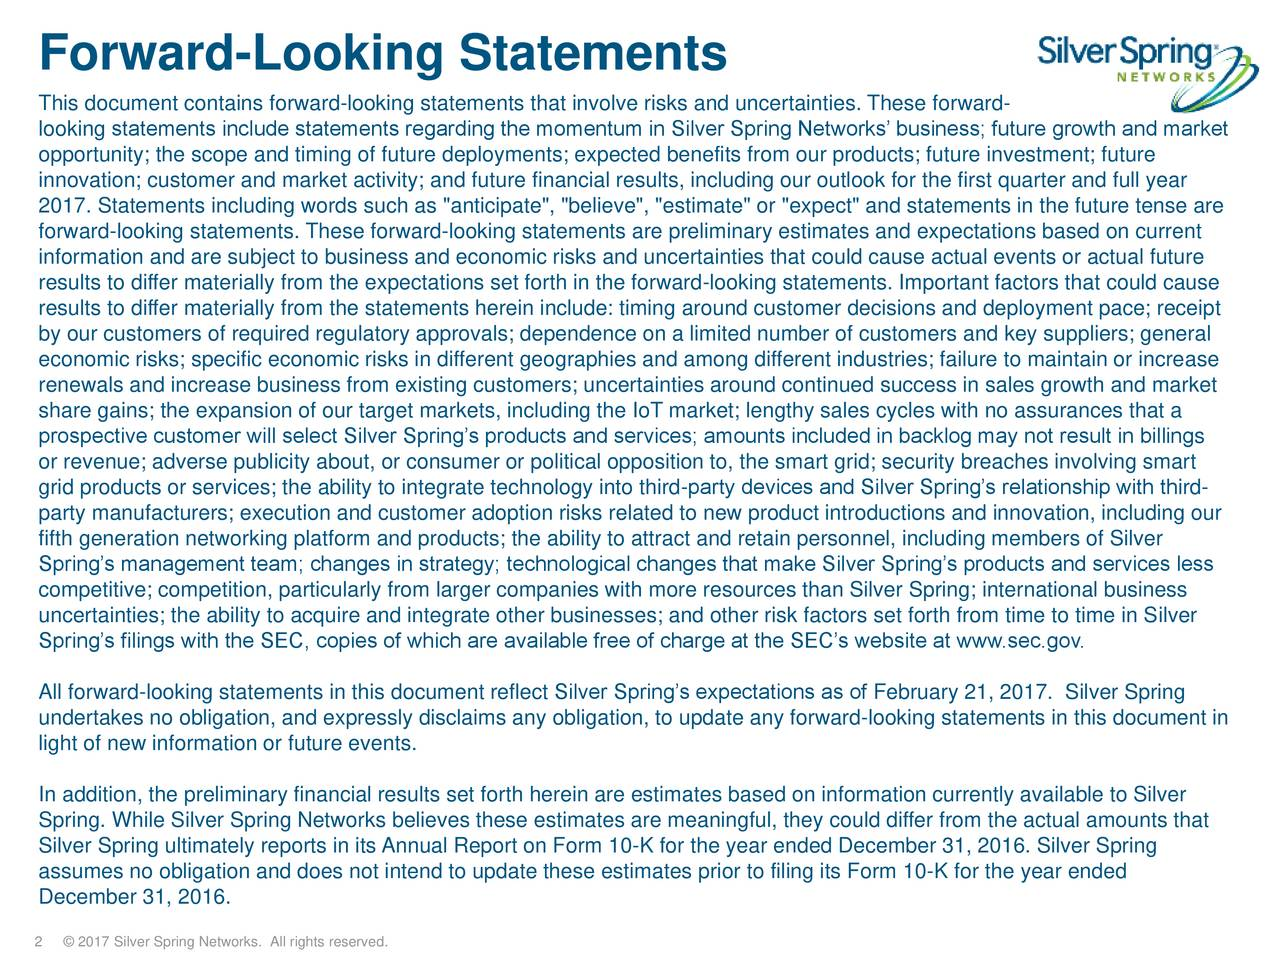 "This document contains forward-looking statements that involve risks and uncertainties. These forward- looking statements include statements regarding the momentum in Silver Spring Networks business; future growth and market opportunity; the scope and timing of future deployments; expected benefits from our products; future investment; future innovation; customer and market activity; and future financial results, including our outlook for the first quarter and full year 2017. Statements including words such as ""anticipate"", ""believe"", ""estimate"" or ""expect"" and statements in the future tense are forward-looking statements. These forward-looking statements are preliminary estimates and expectations based on current information and are subject to business and economic risks and uncertainties that could cause actual events or actual future results to differ materially from the expectations set forth in the forward-looking statements. Important factors that could cause results to differ materially from the statements herein include: timing around customer decisions and deployment pace; receipt by our customers of required regulatory approvals; dependence on a limited number of customers and key suppliers; general economic risks; specific economic risks in different geographies and among different industries; failure to maintain or increase renewals and increase business from existing customers; uncertainties around continued success in sales growth and market share gains; the expansion of our target markets, including the IoT market; lengthy sales cycles with no assurances that a prospective customer will select Silver Springs products and services; amounts included in backlog may not result in billings or revenue; adverse publicity about, or consumer or political opposition to, the smart grid; security breaches involving smart grid products or services; the ability to integrate technology into third-party devices and Silver Springs relationship with third- party manufacturers; execution and customer adoption risks related to new product introductions and innovation, including our fifth generation networking platform and products; the ability to attract and retain personnel, including members of Silver Springs management team; changes in strategy; technological changes that make Silver Springs products and services less competitive; competition, particularly from larger companies with more resources than Silver Spring; international business uncertainties; the ability to acquire and integrate other businesses; and other risk factors set forth from time to time in Silver Springs filings with the SEC, copies of which are available free of charge at the SECs website at www.sec.gov. All forward-looking statements in this document reflect Silver Springs expectations as of February 21, 2017. Silver Spring undertakes no obligation, and expressly disclaims any obligation, to update any forward-looking statements in this document in light of new information or future events. In addition, the preliminary financial results set forth herein are estimates based on information currently available to Silver Spring. While Silver Spring Networks believes these estimates are meaningful, they could differ from the actual amounts that Silver Spring ultimately reports in its Annual Report on Form 10-K for the year ended December 31, 2016. Silver Spring assumes no obligation and does not intend to update these estimates prior to filing its Form 10-K for the year ended December 31, 2016. 2  2017 Silver Spring Networks. All rights reserved."